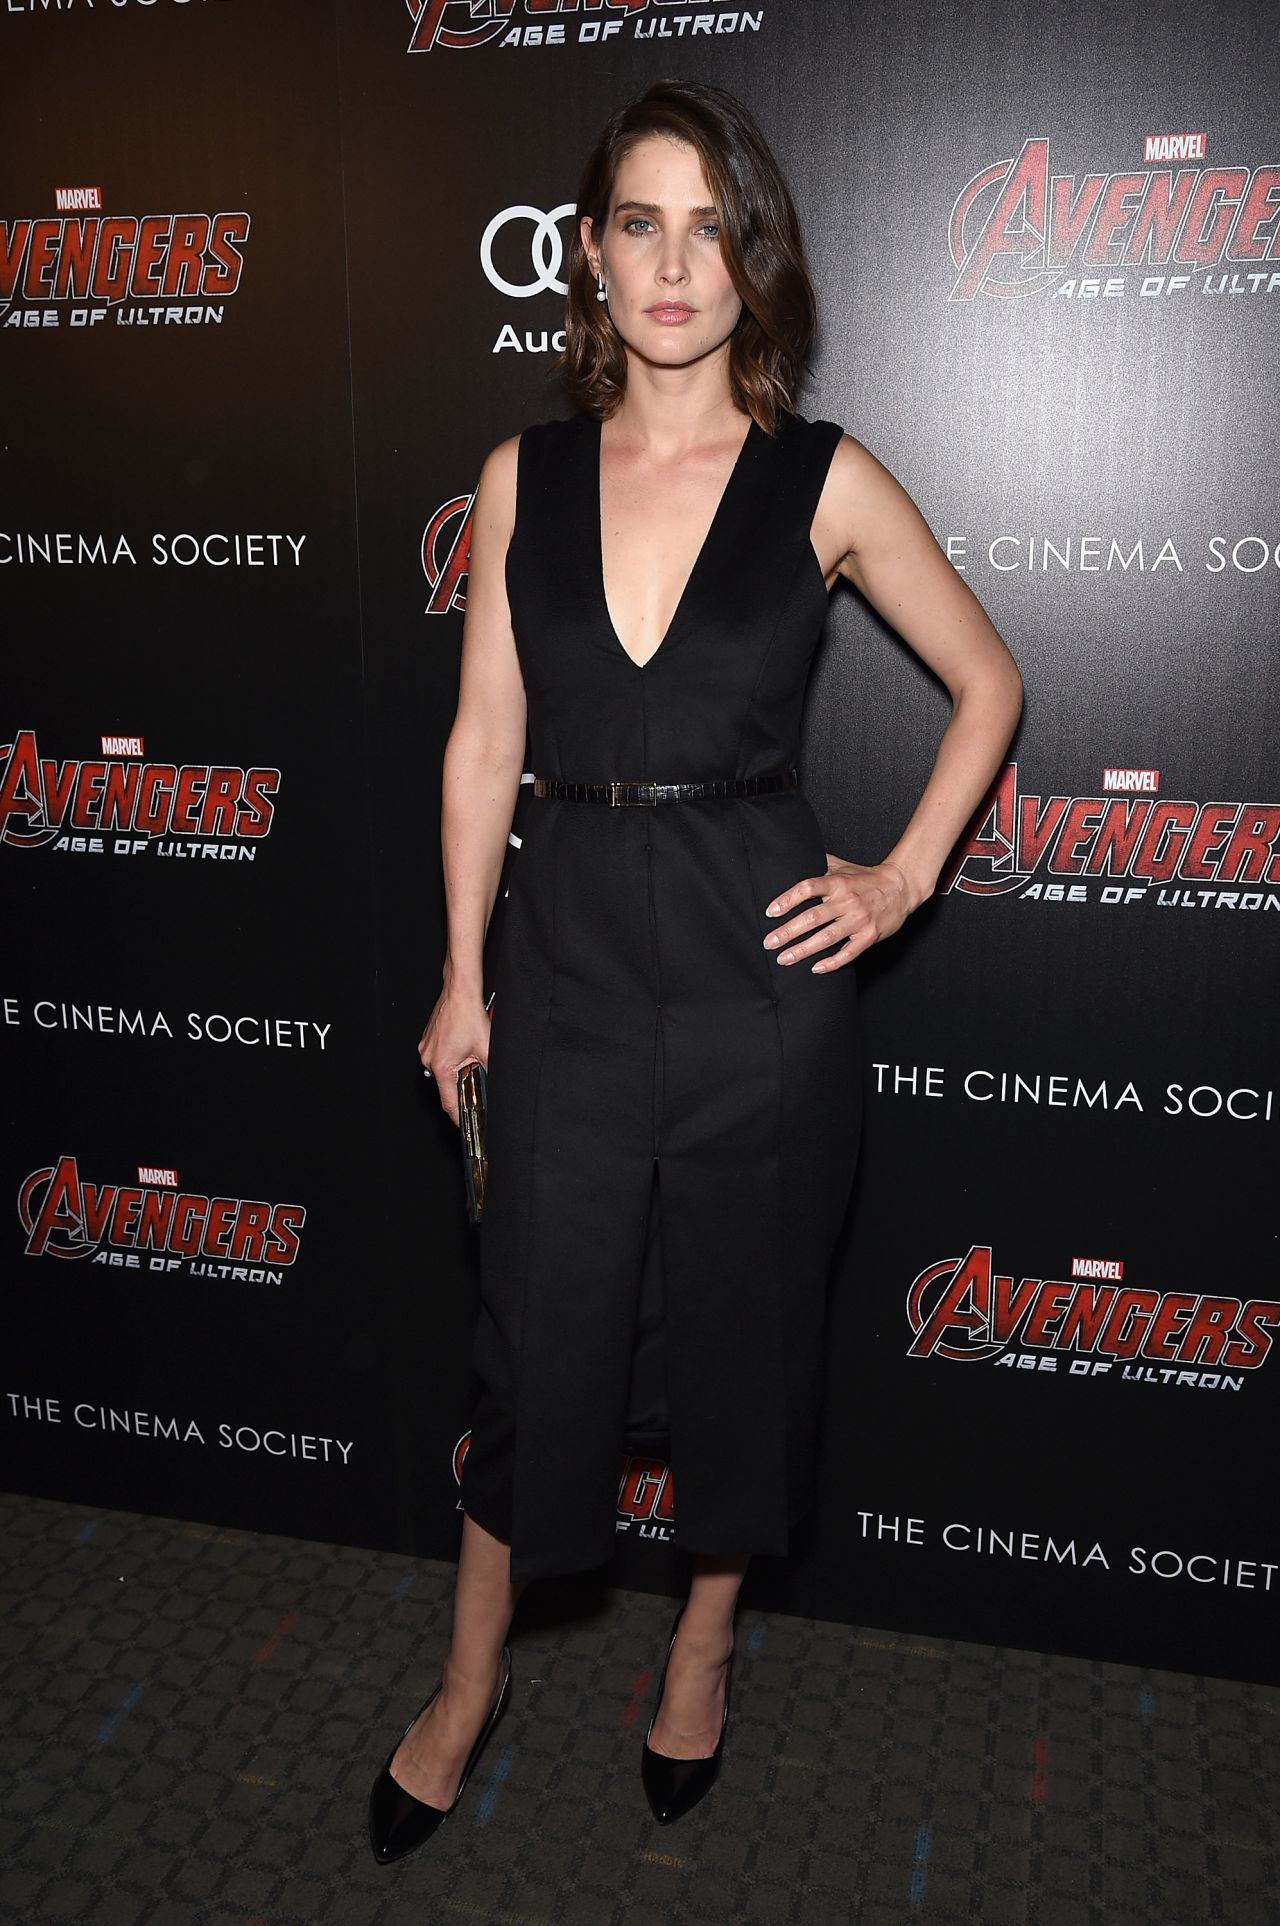 Cobie Smulders Avengers Age Of Ultron Screening In New